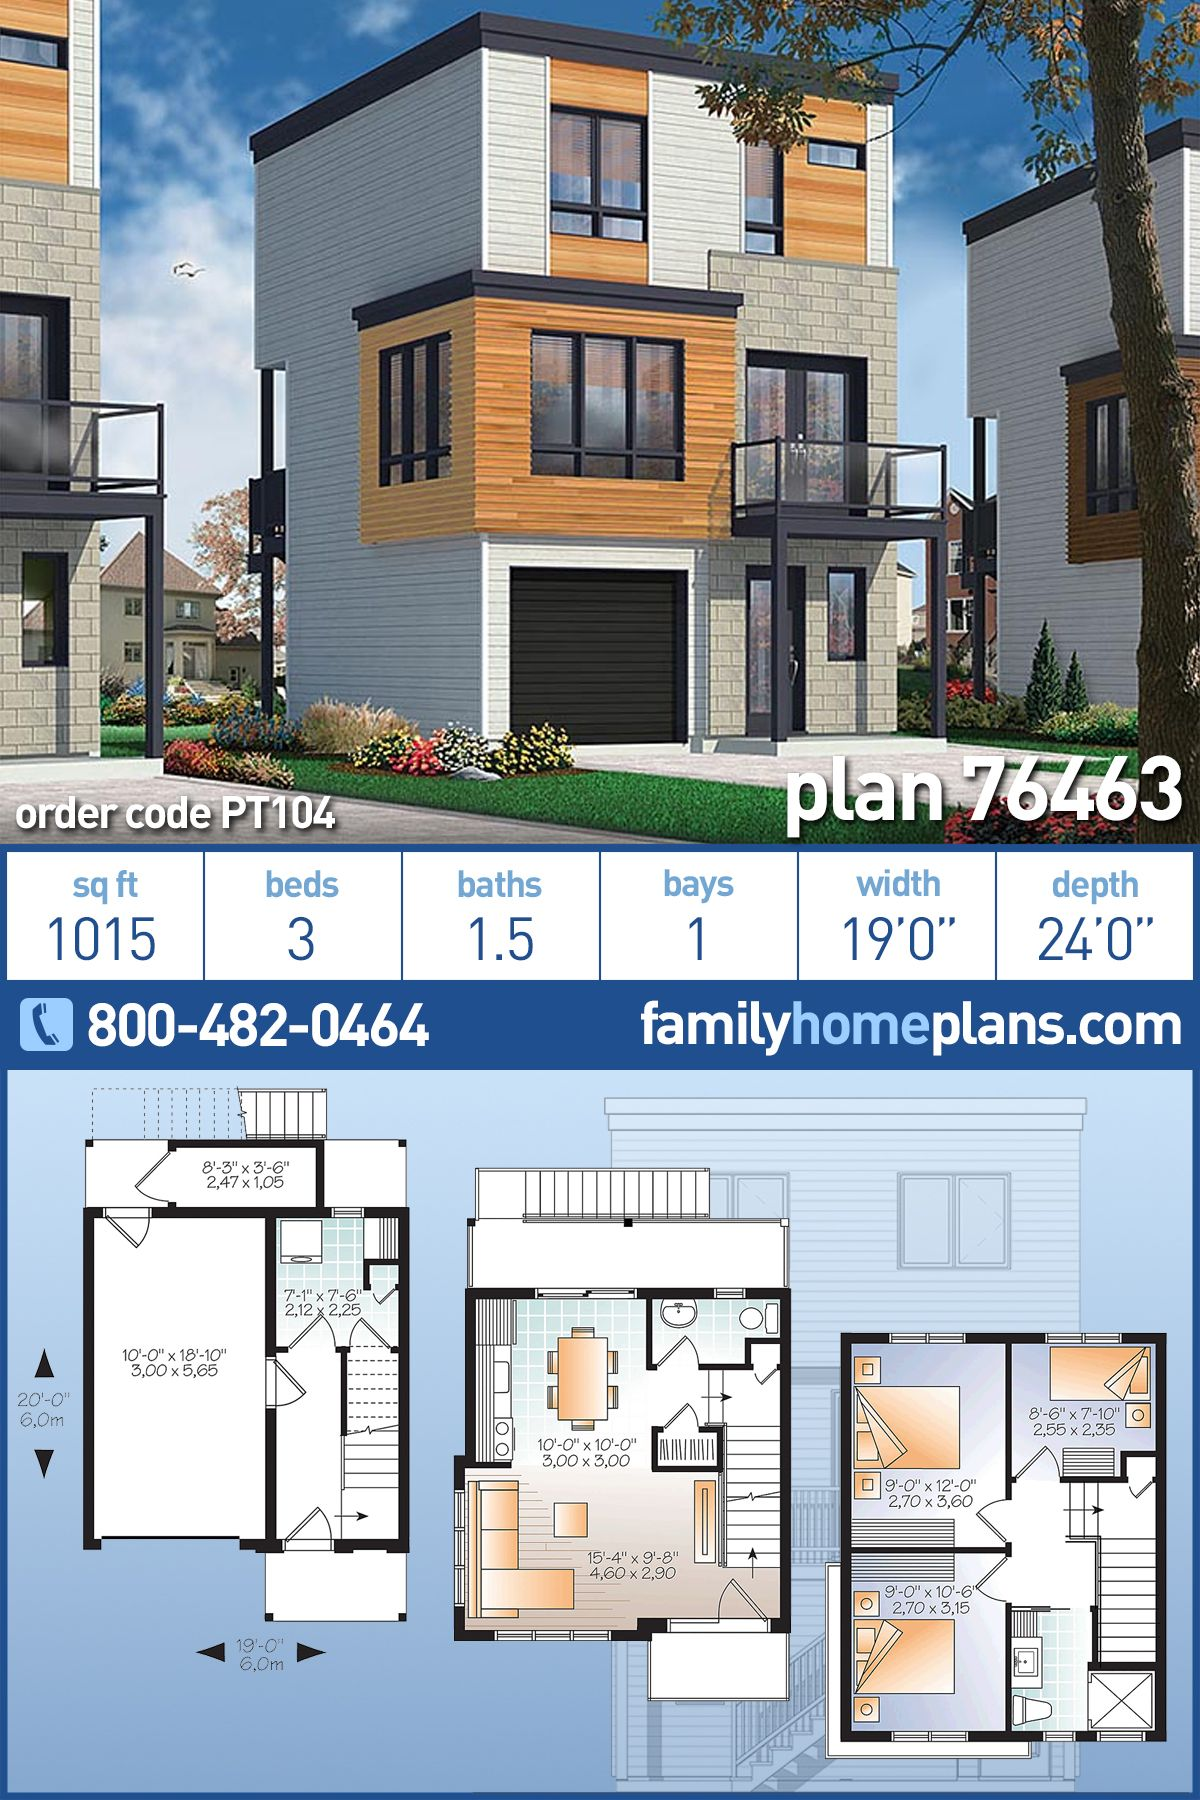 Modern Style House Plan 76463 With 3 Bed 2 Bath 1 Car Garage In